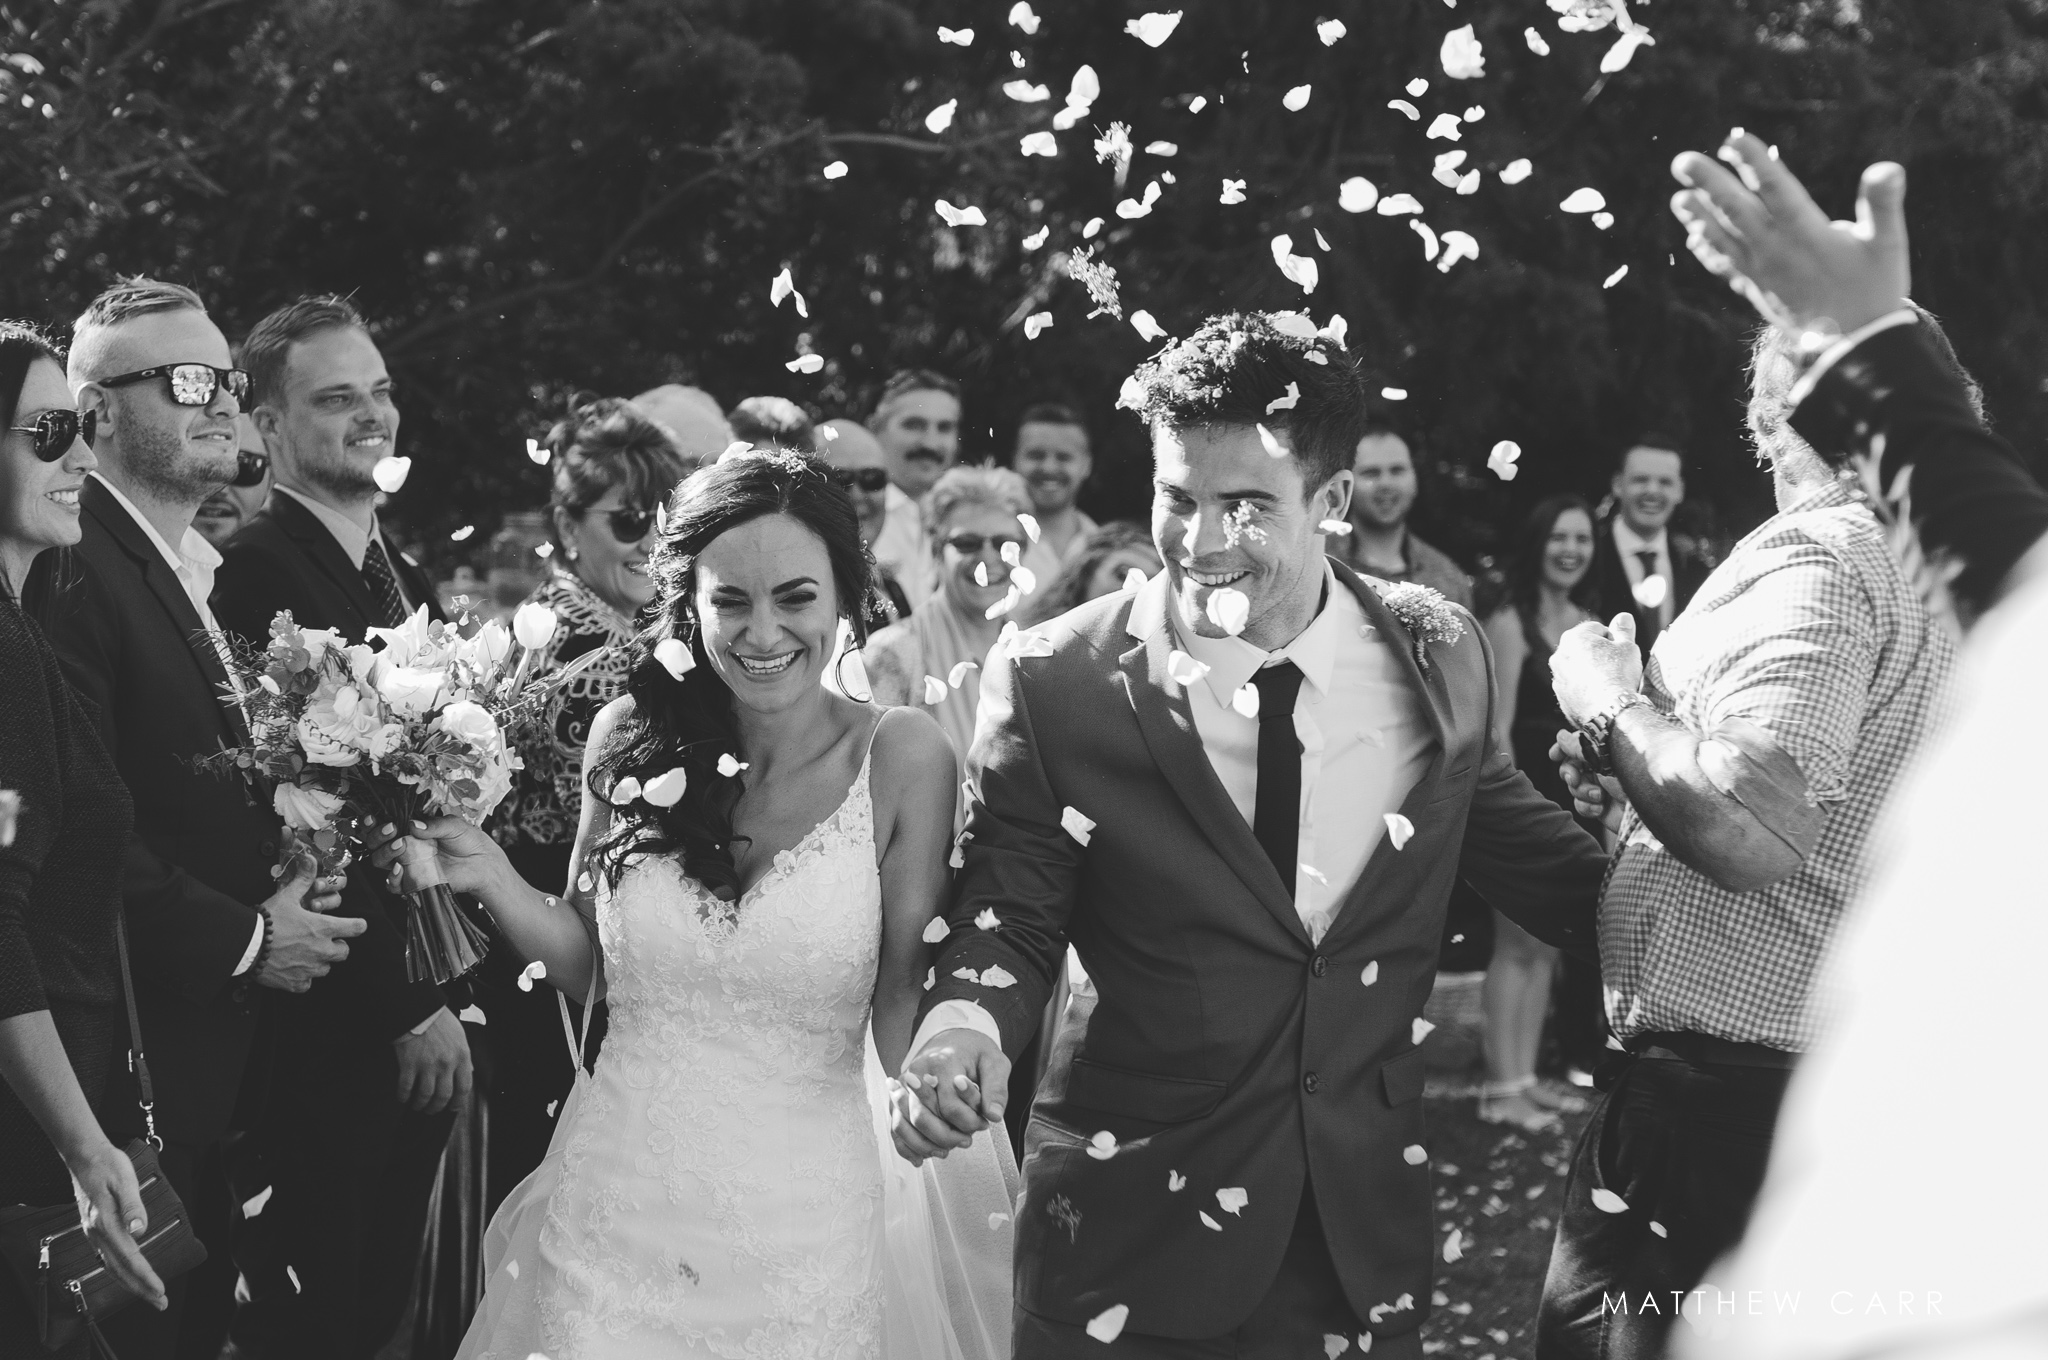 ceremony & after - low res (viewing, social media) (91 of 111).JPG